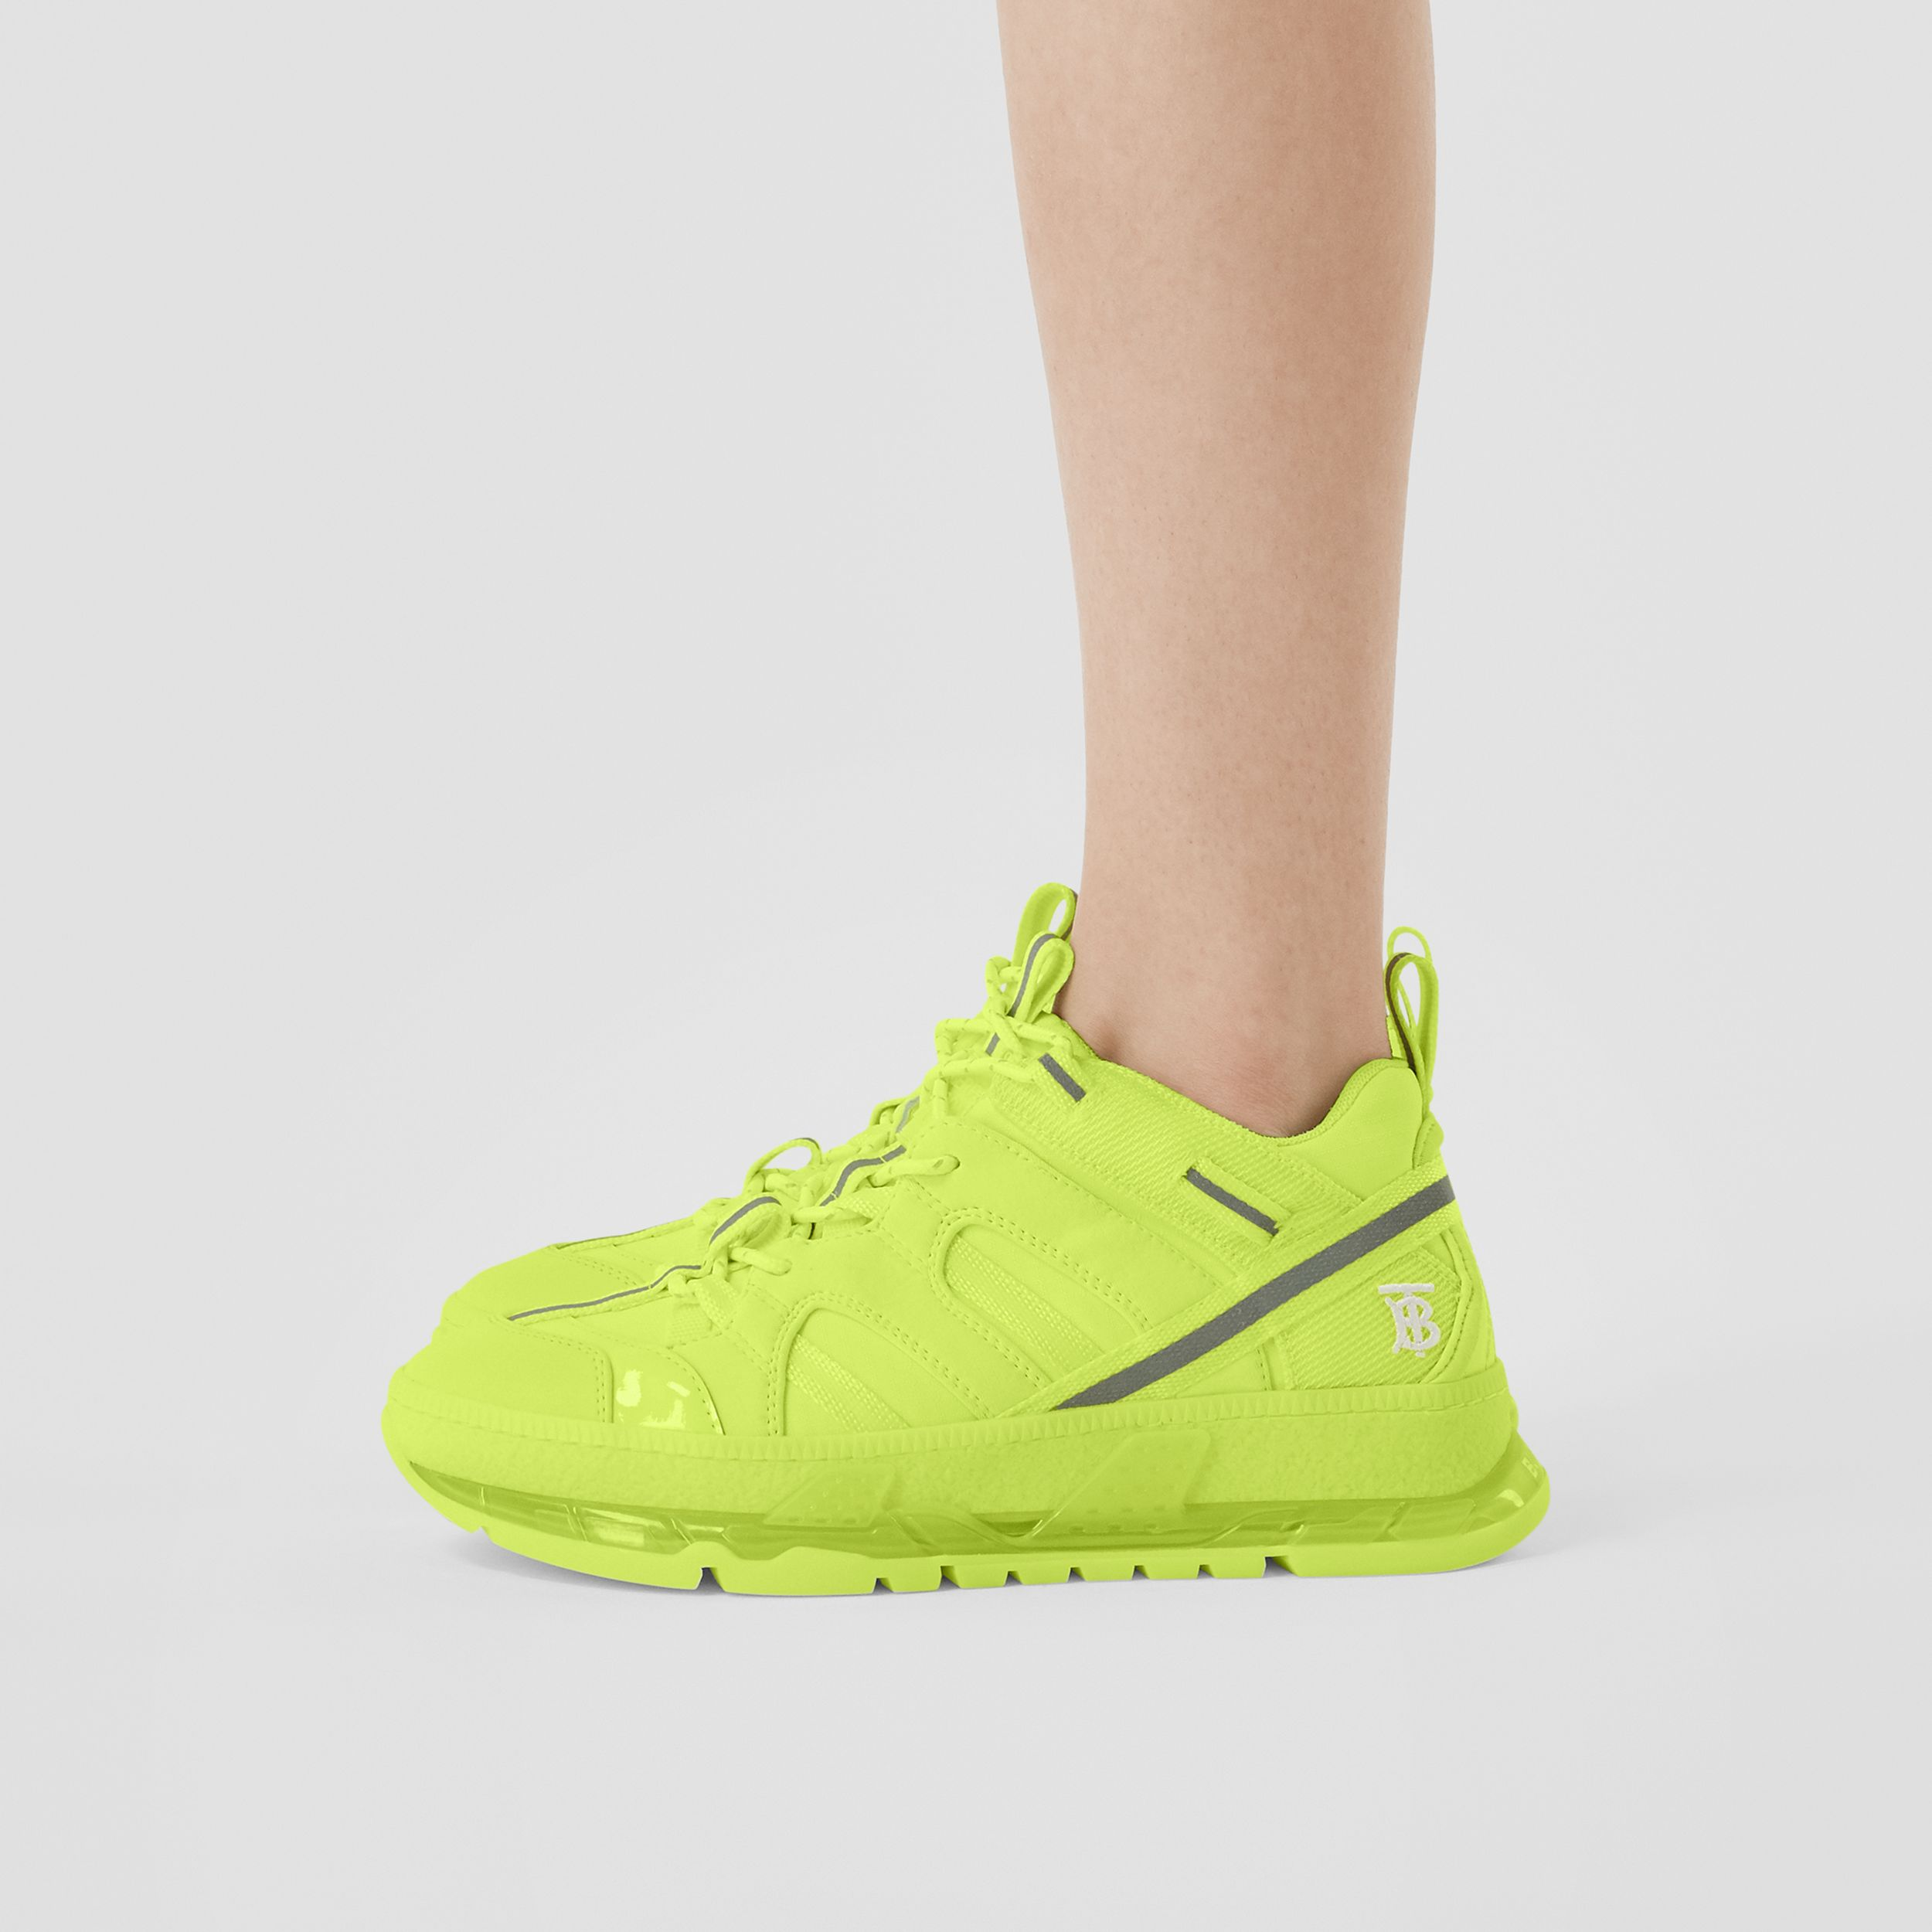 Nylon and Cotton Union Sneakers in Fluorescent Yellow - Women | Burberry - 3